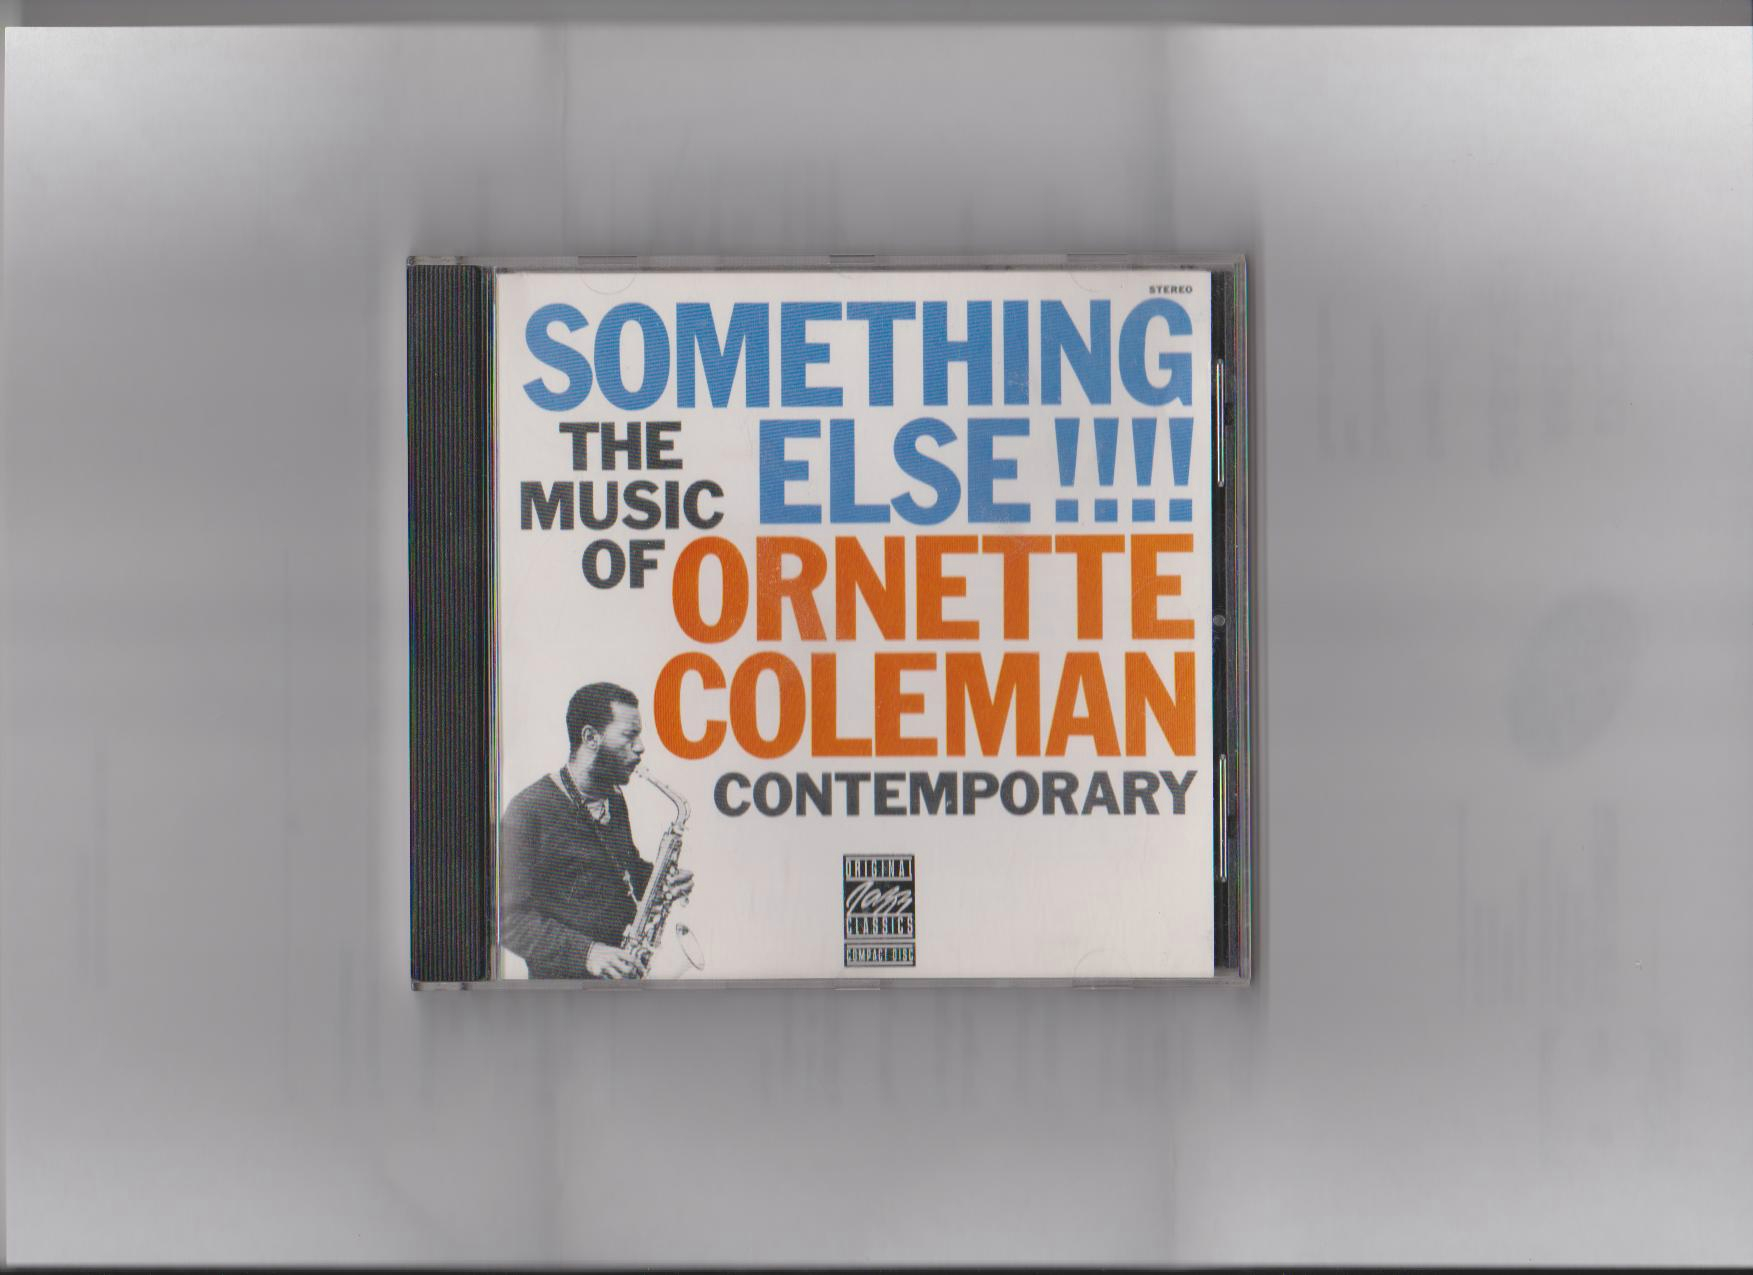 The Music of Ornette Coleman